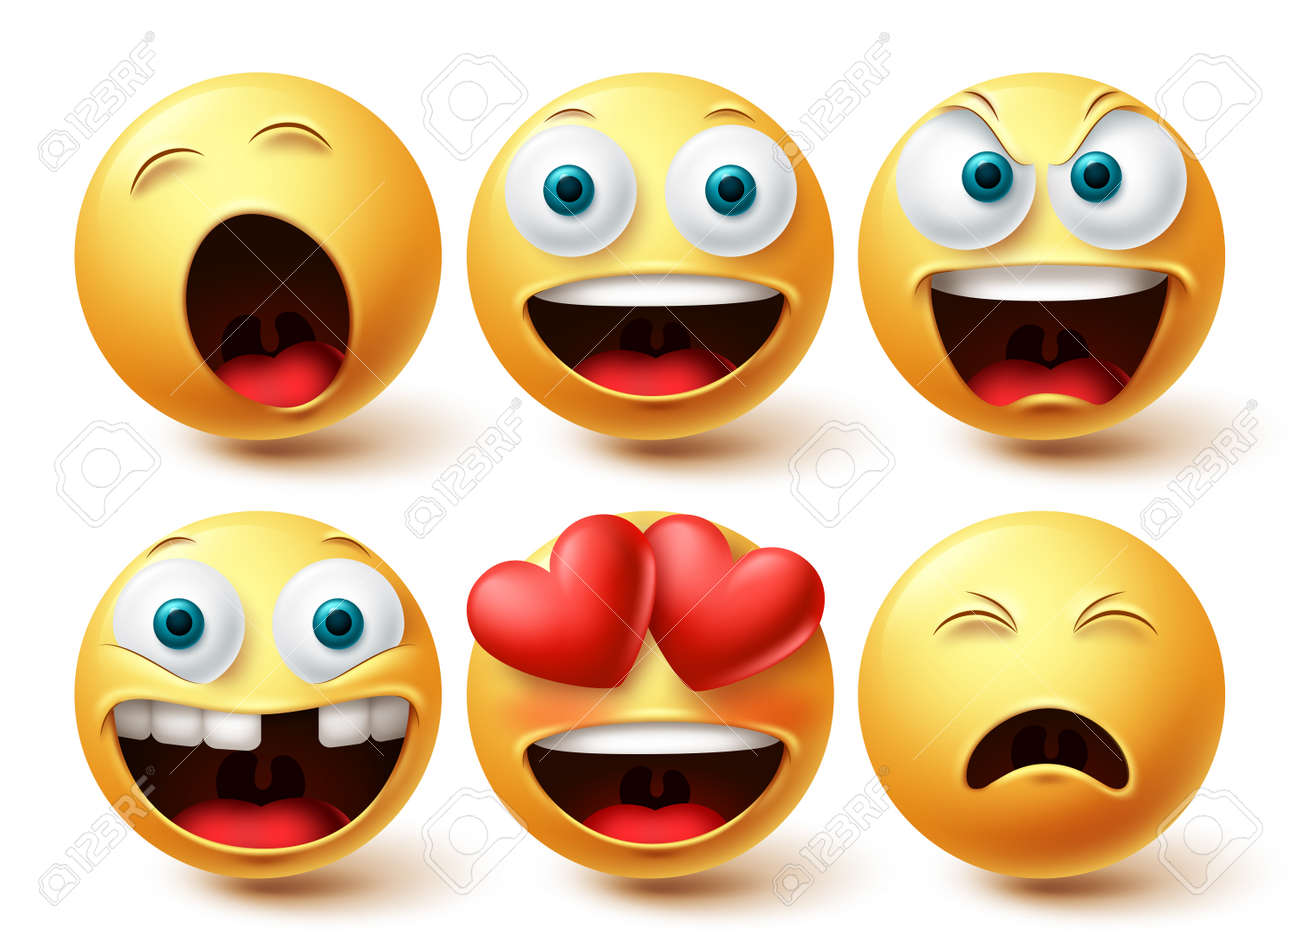 Emoji smileys happy vector set. Smileys emoticon happy, in love and sleepy face collection facial expressions isolated in white background for graphic design elements. Vector illustration - 171747800